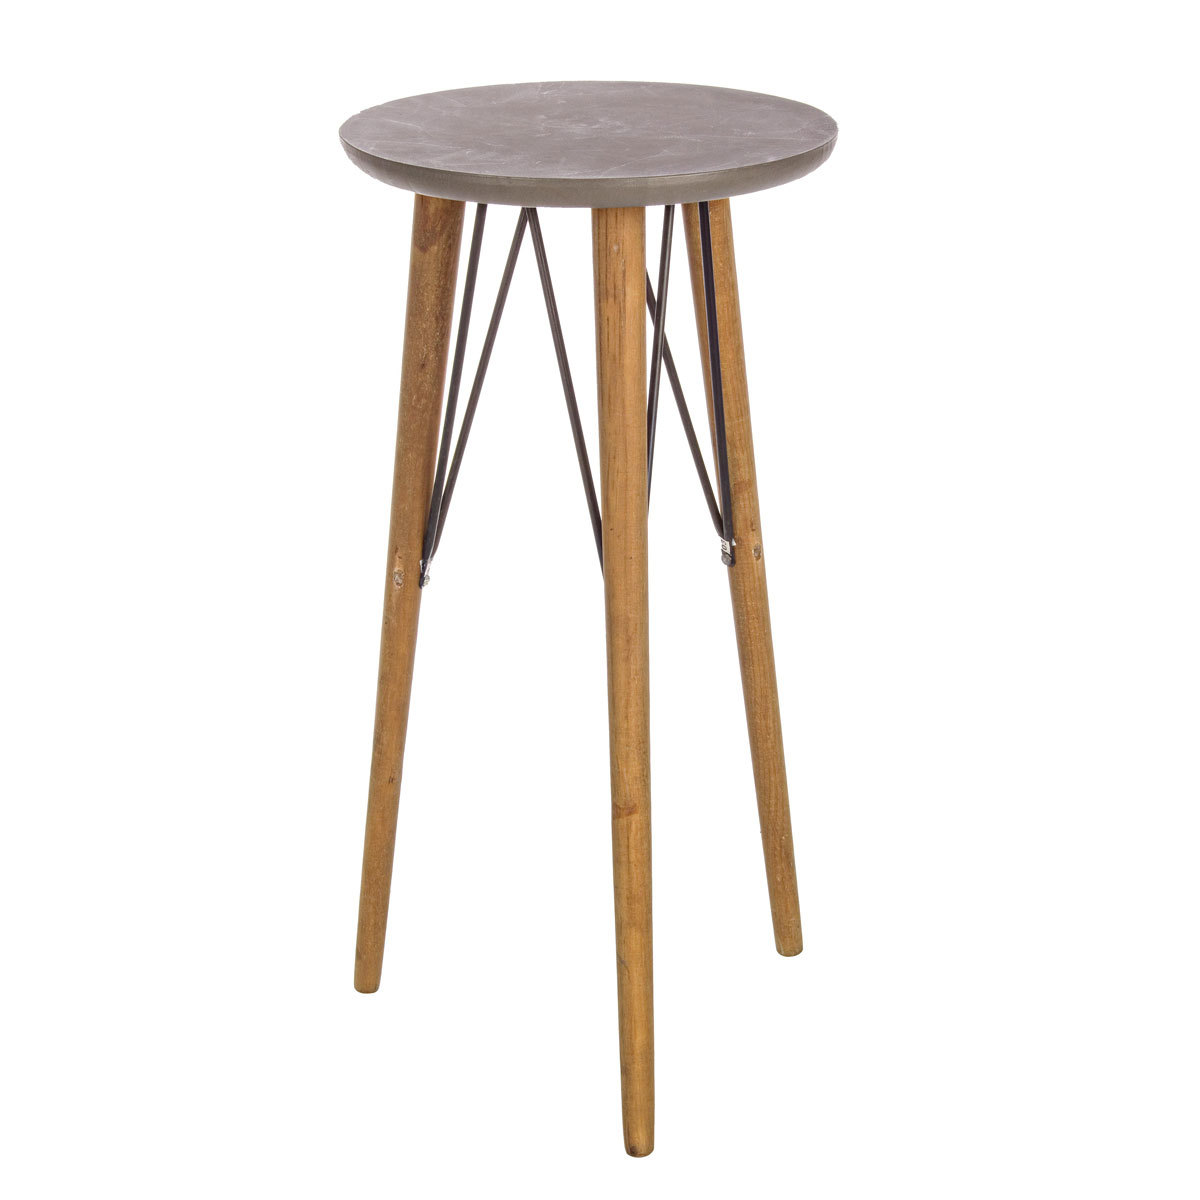 Photos 1: Bizzotto Round wood coffee table d. 40 h. 81 0740245